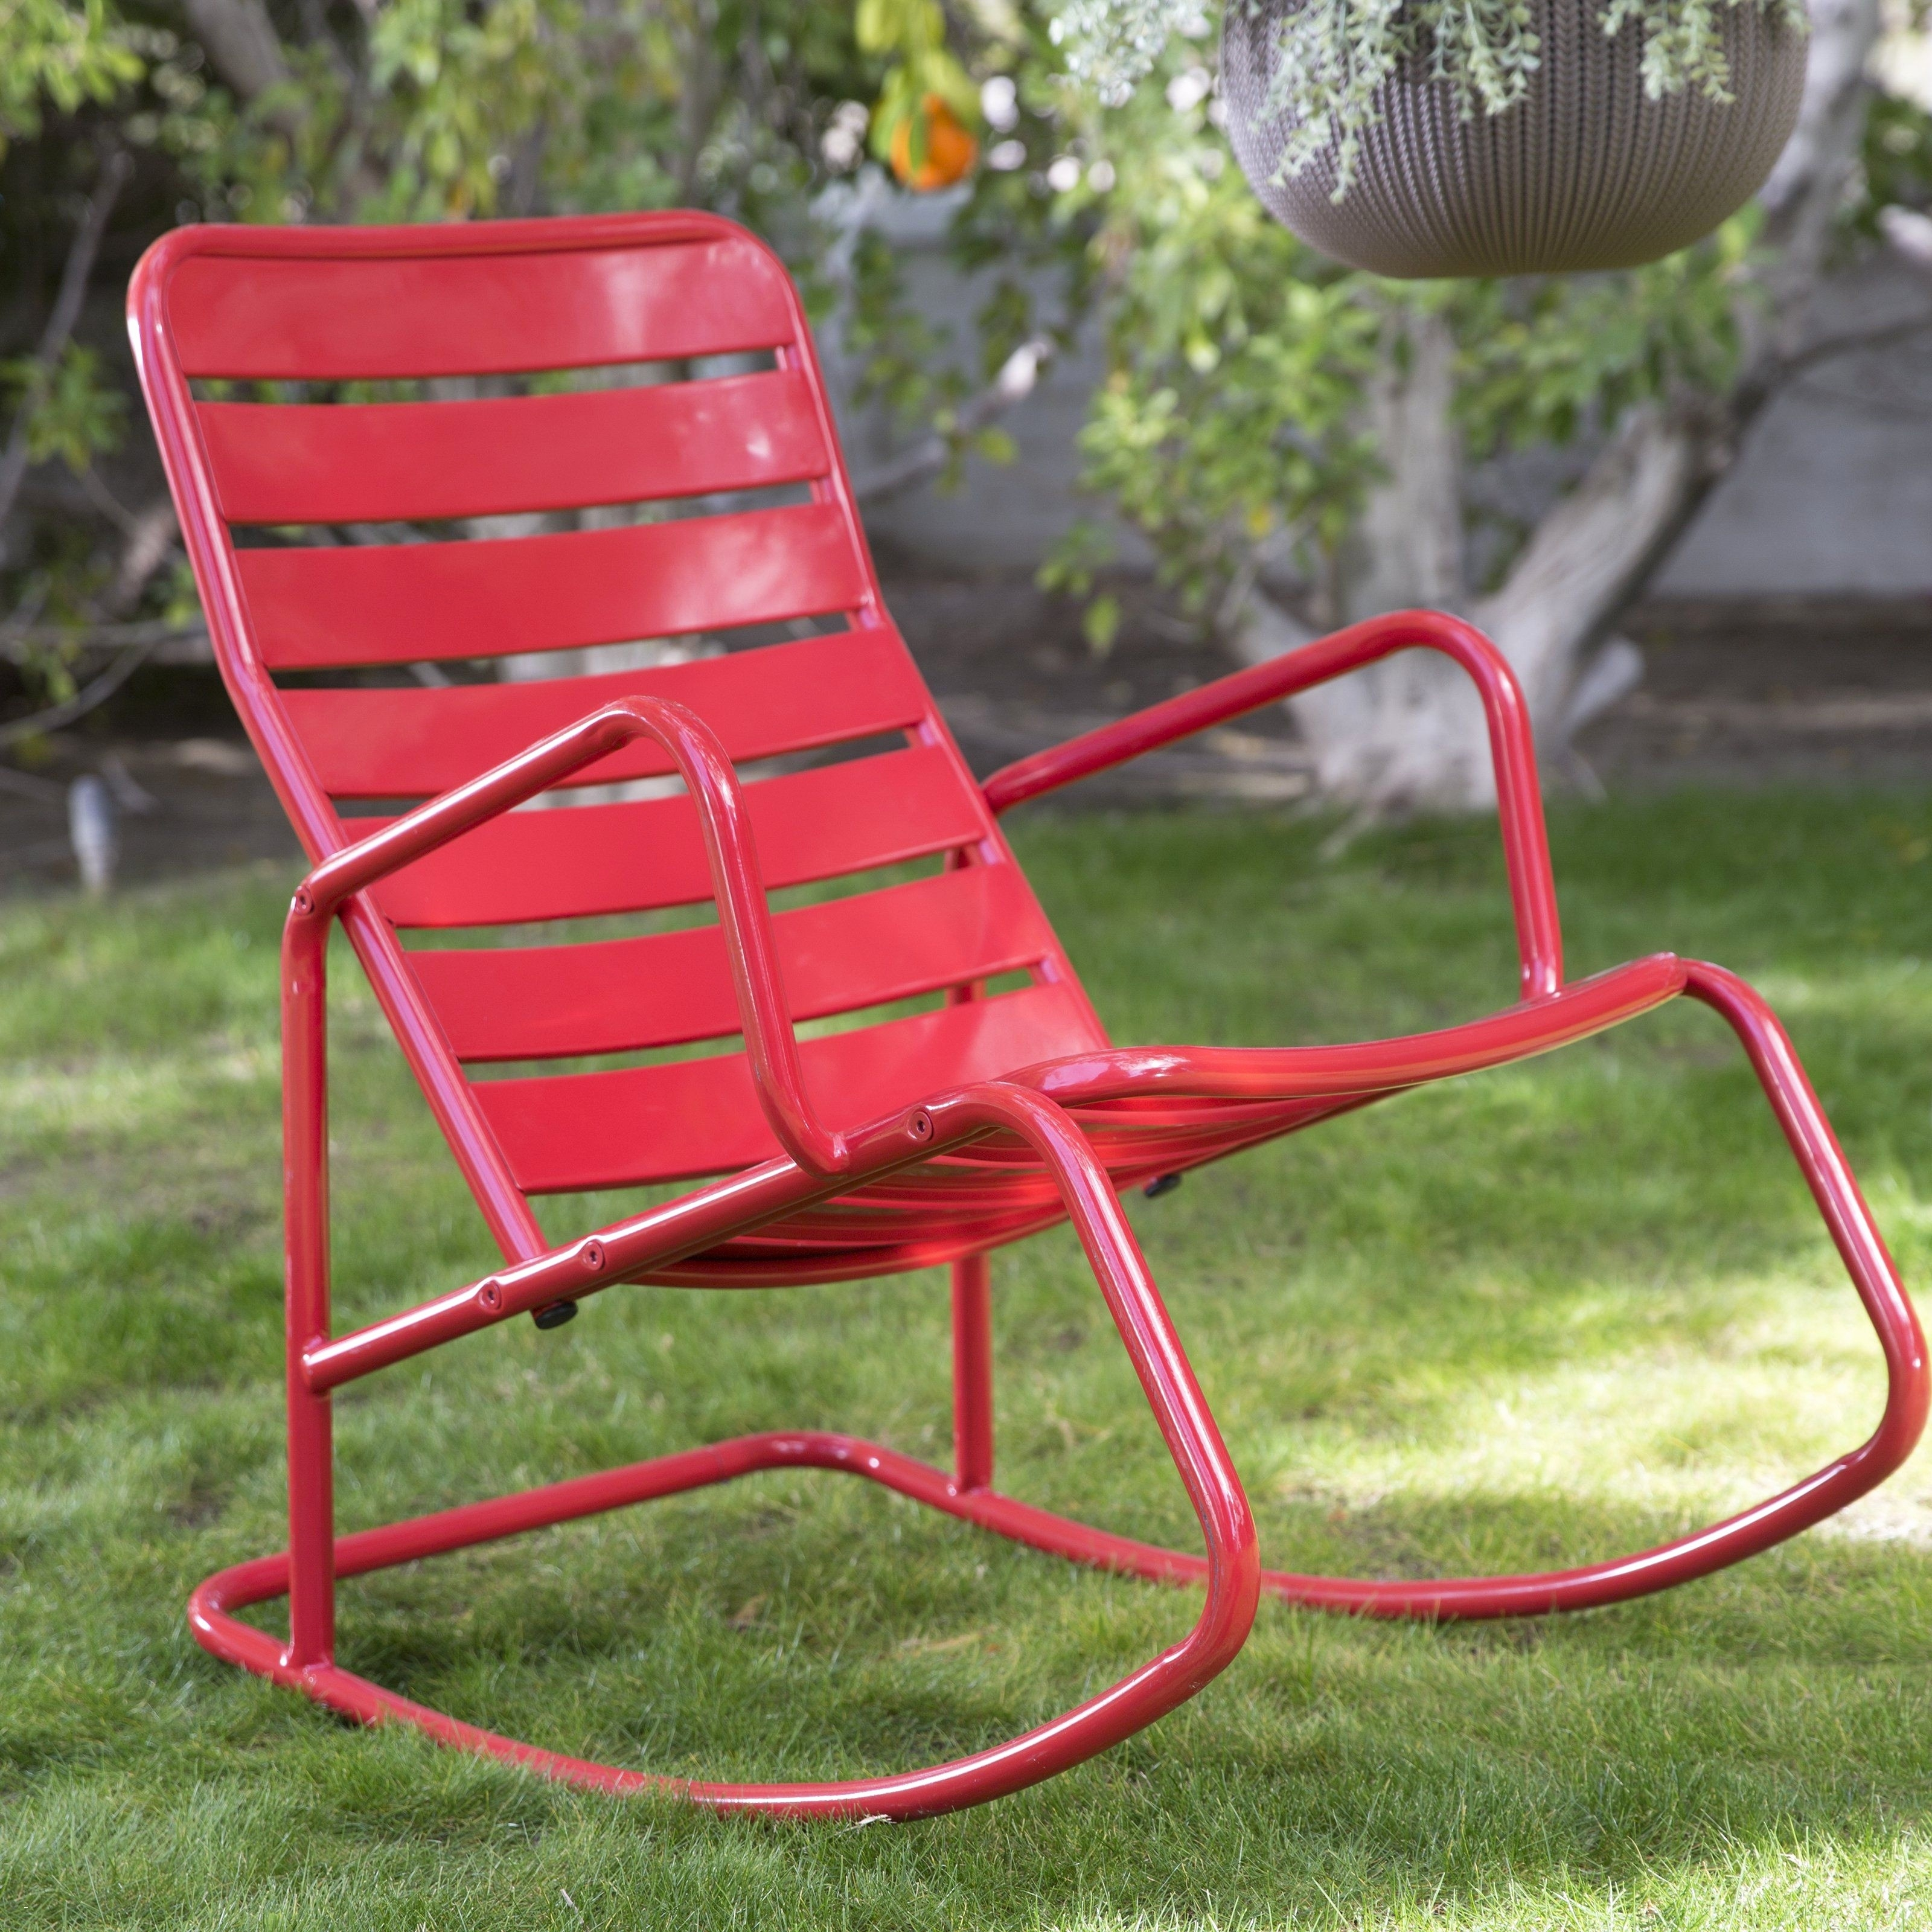 Metal Patio Rocking Chairs Elegant Wicker Patio Rocker Best Outdoor Intended For Patio Metal Rocking Chairs (View 7 of 15)